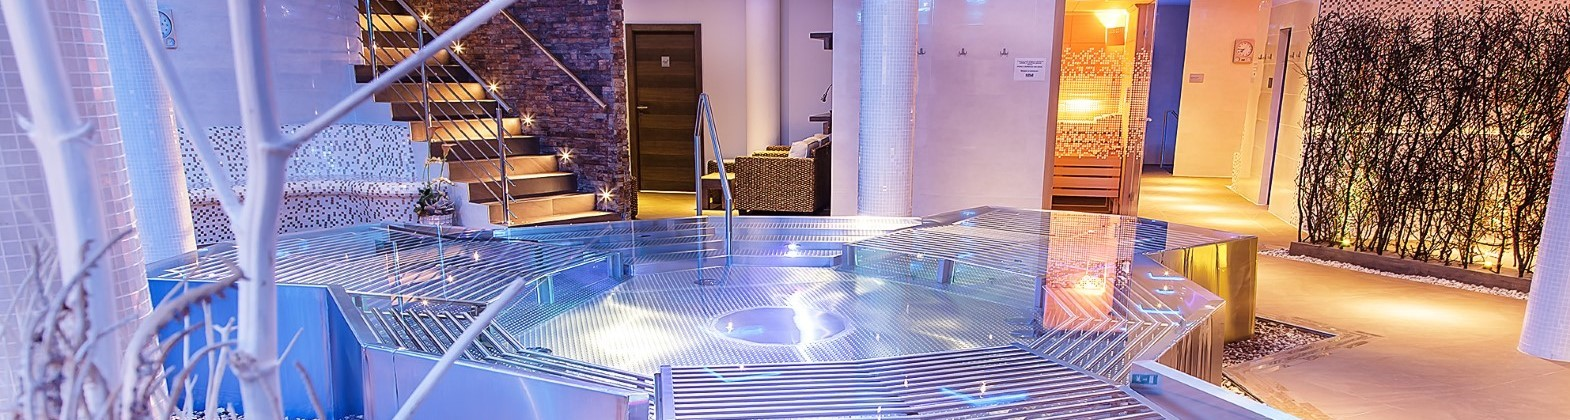 Luxury stainless steel whirlpools - from Aquamarine Spa